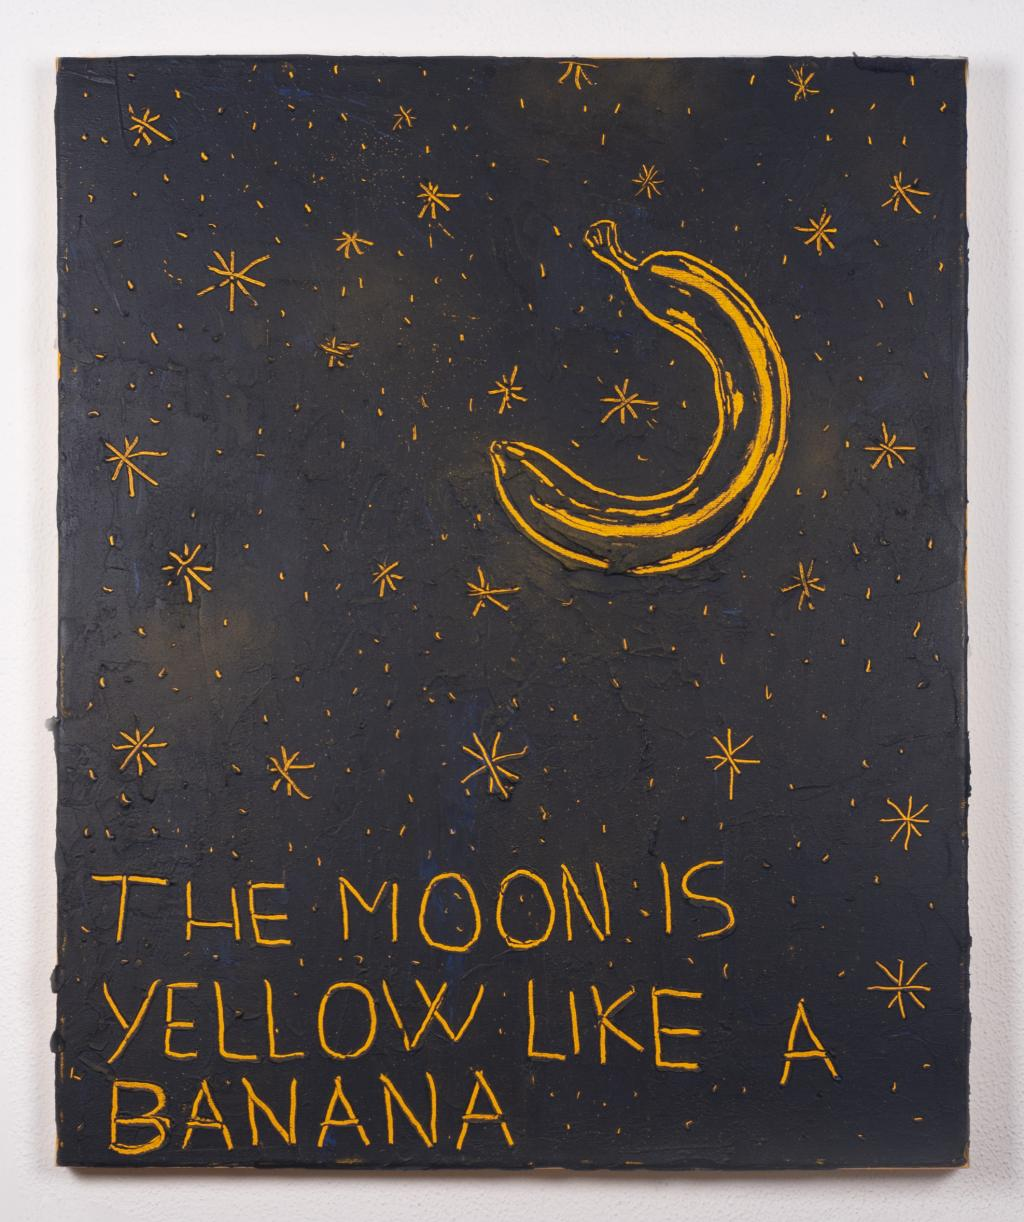 The moon is yellow like a banana 1